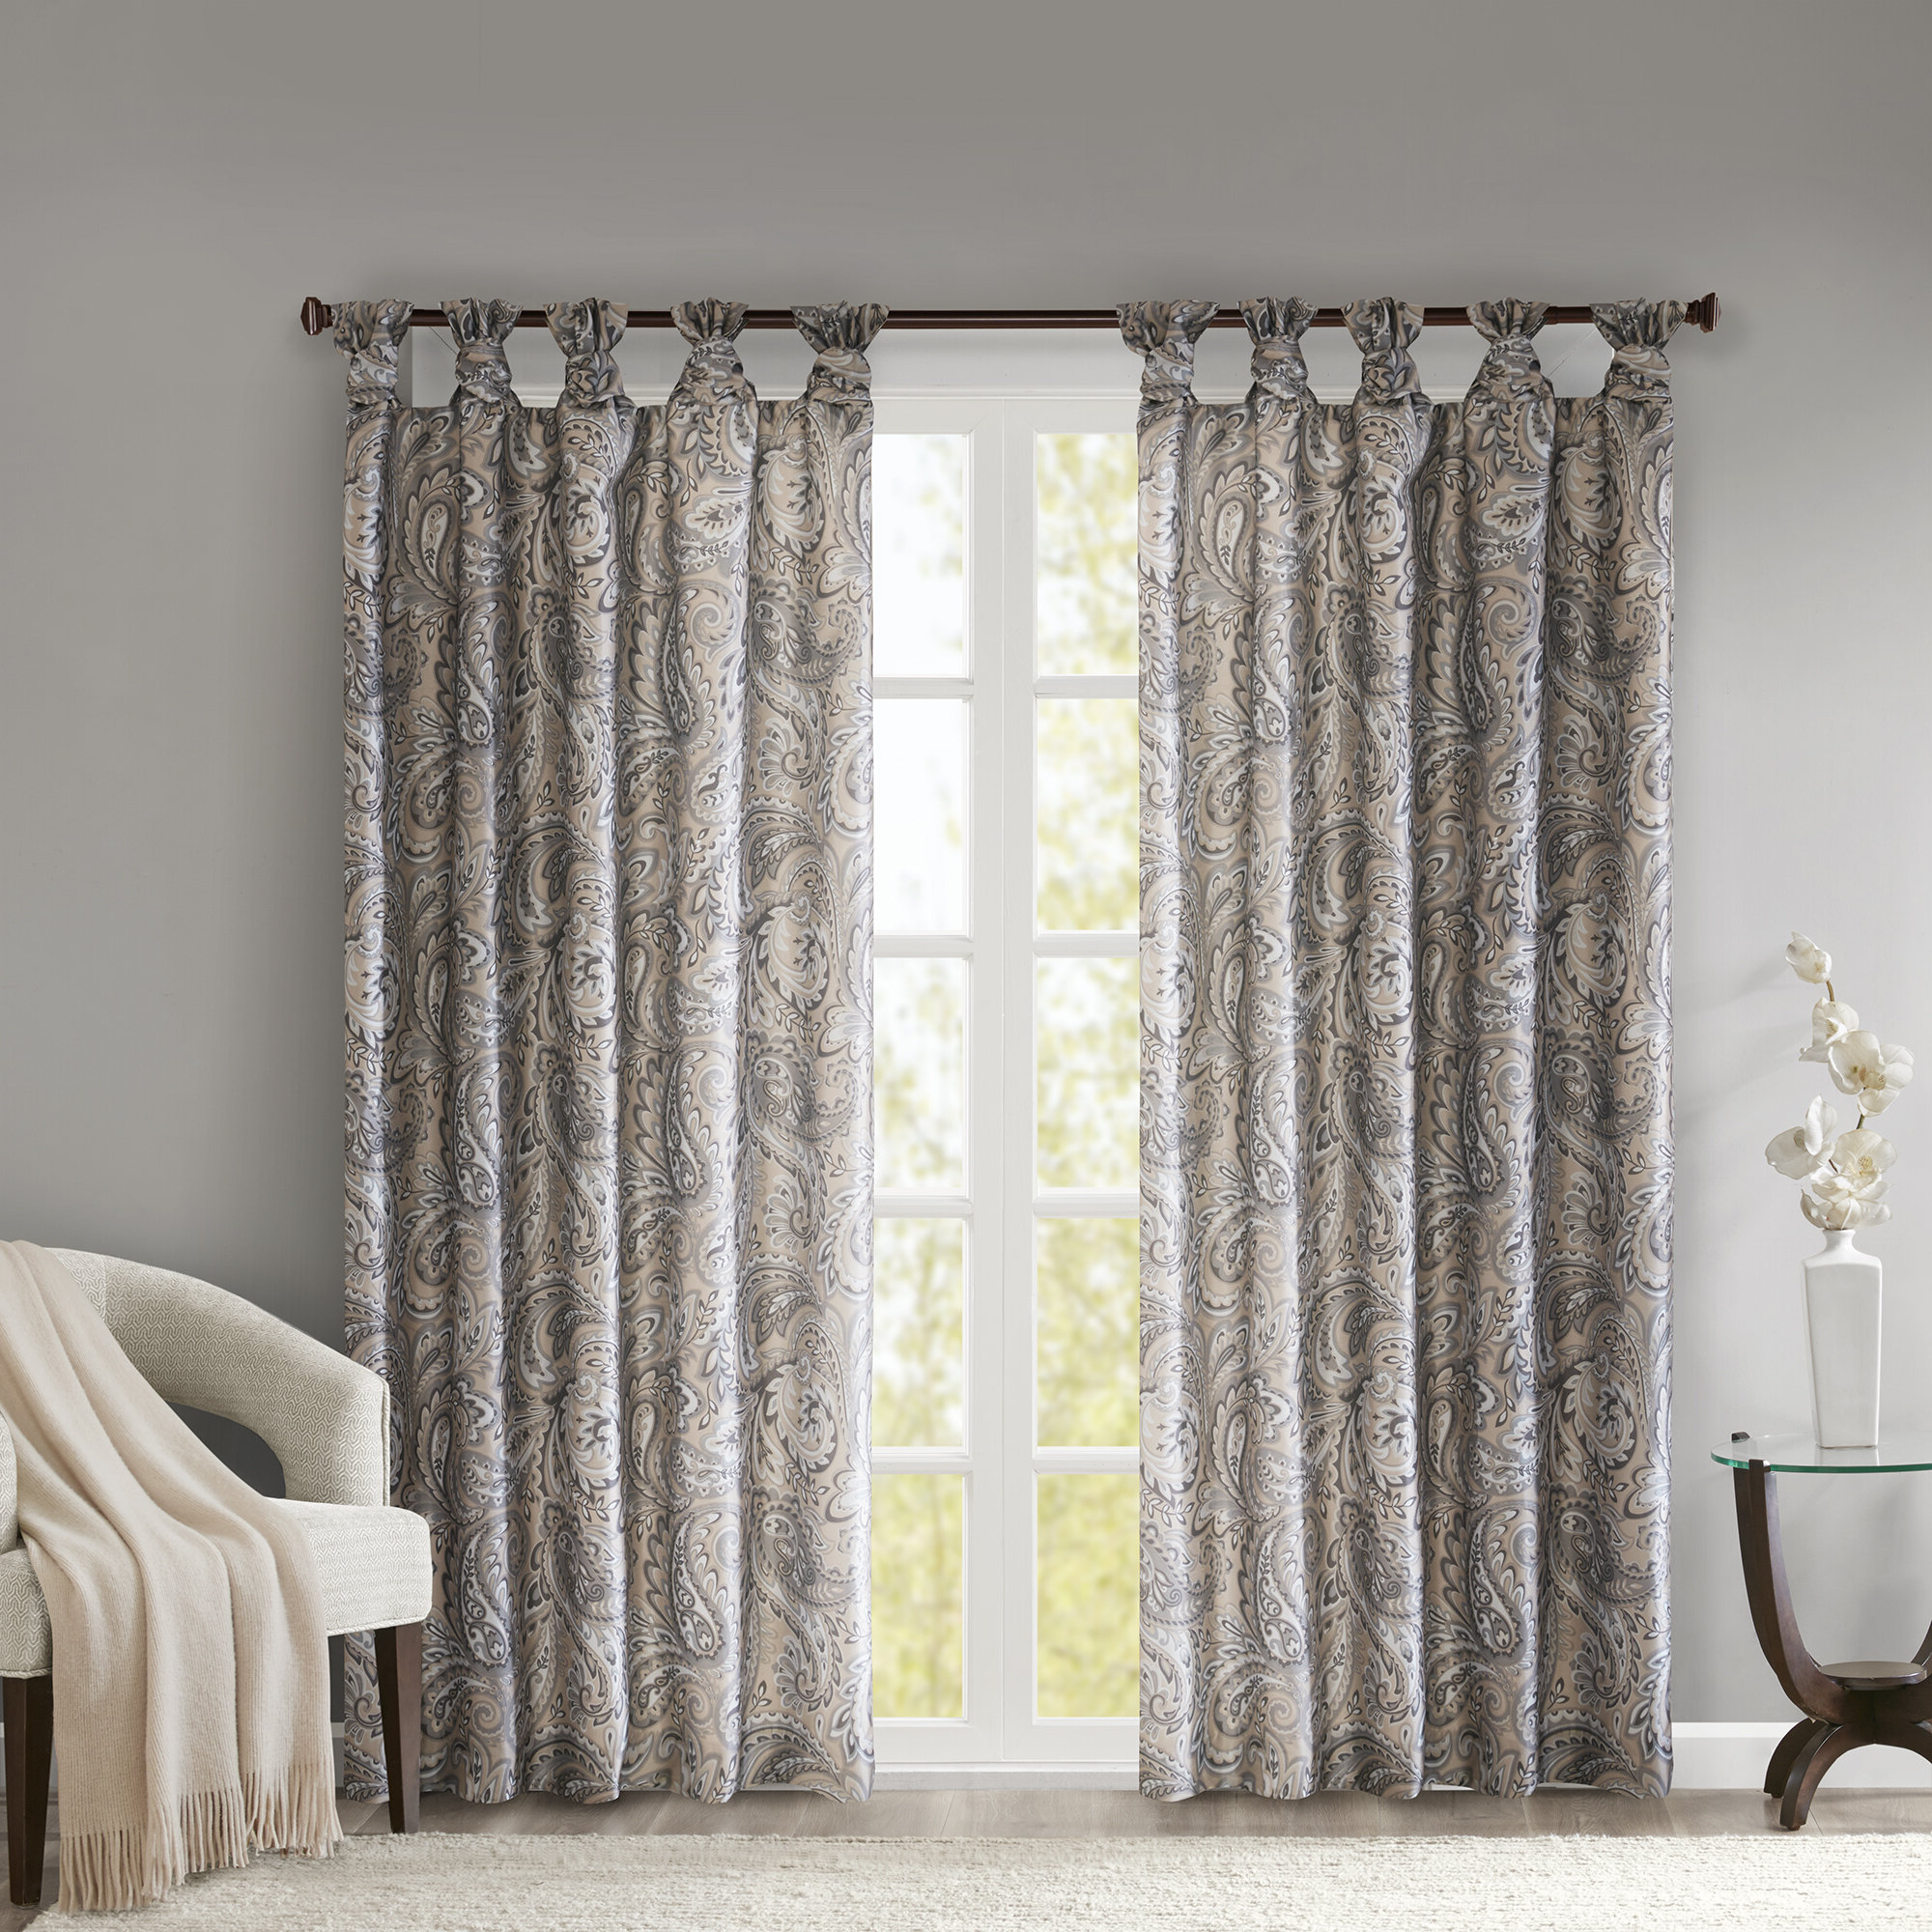 Best Home Decorating Ideas Within Famous Elowen White Twist Tab Voile Sheer Curtain Panel Pairs (View 17 of 20)